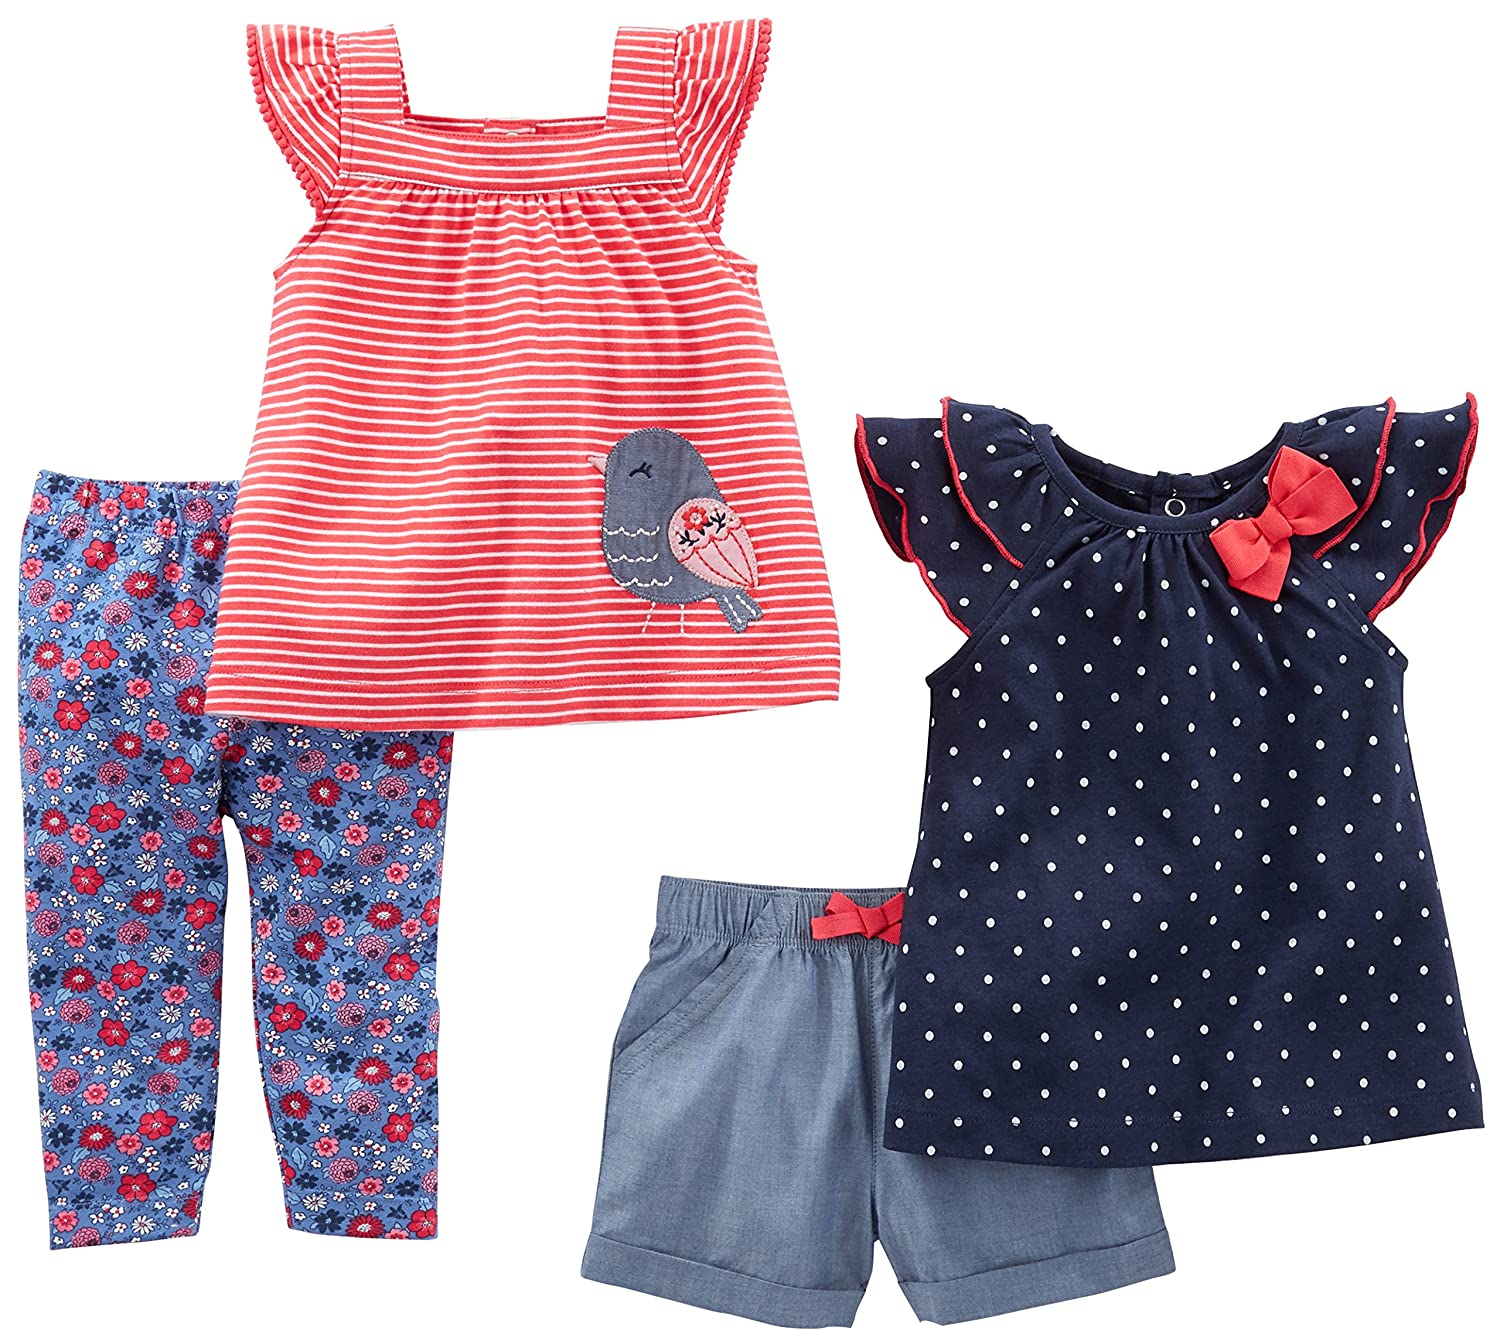 Simple Joys by Carters Baby Girls Infant 4-Piece Playwear Set